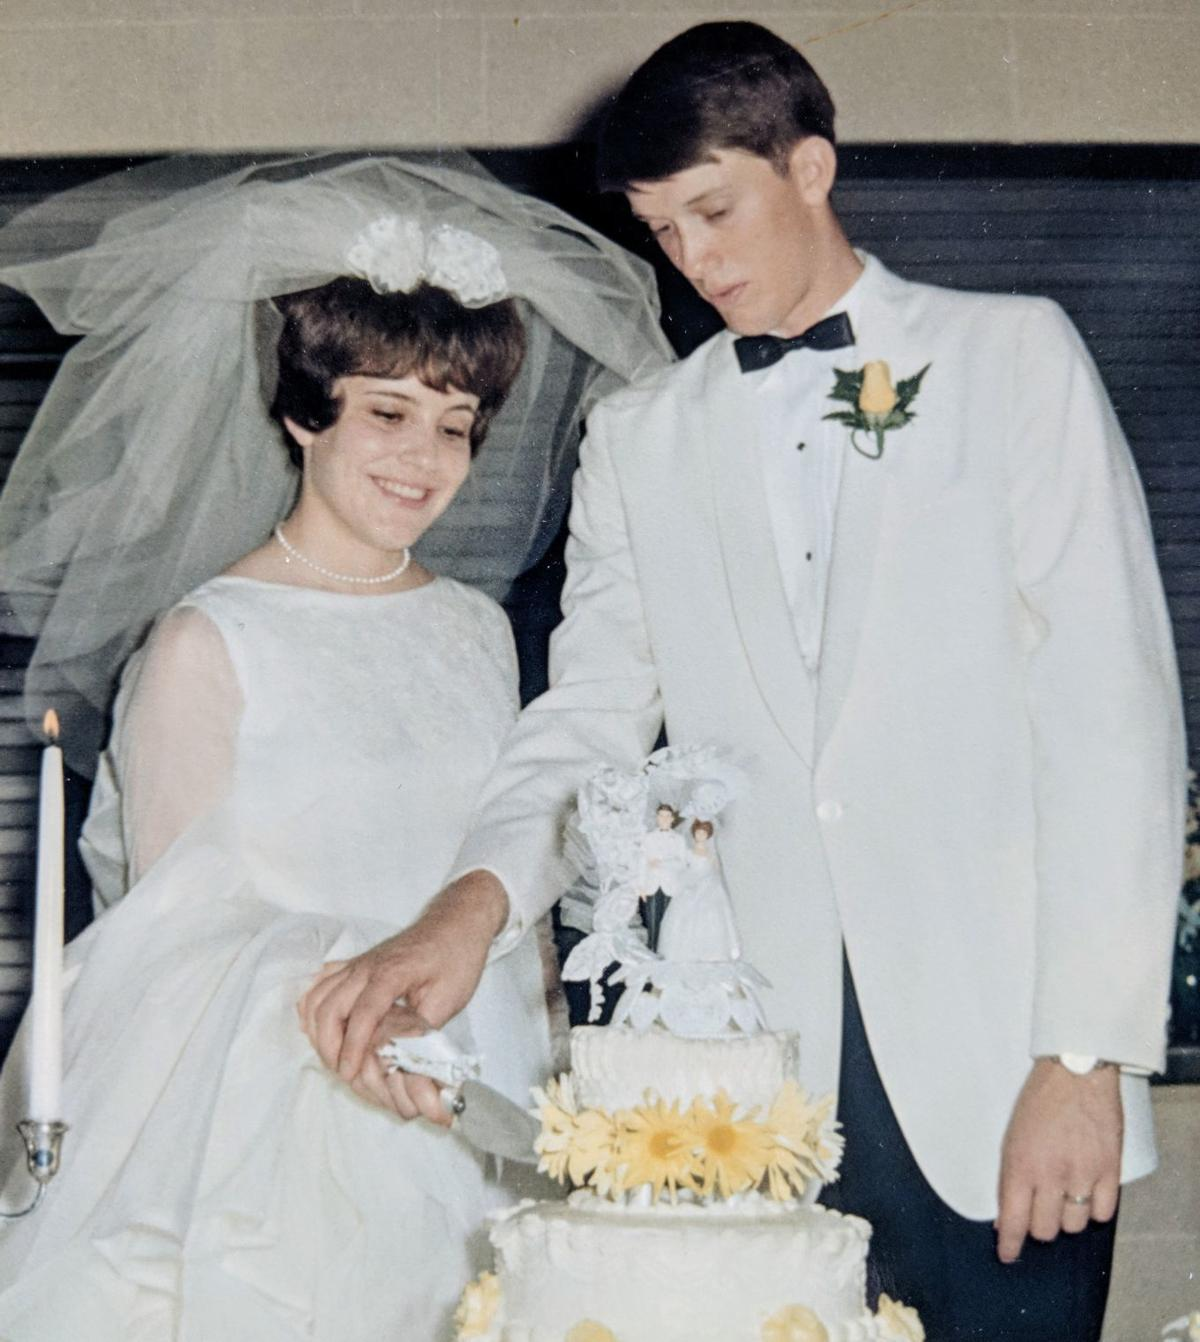 Tom and Pam Stubbendeck 50th Wedding Anniversary